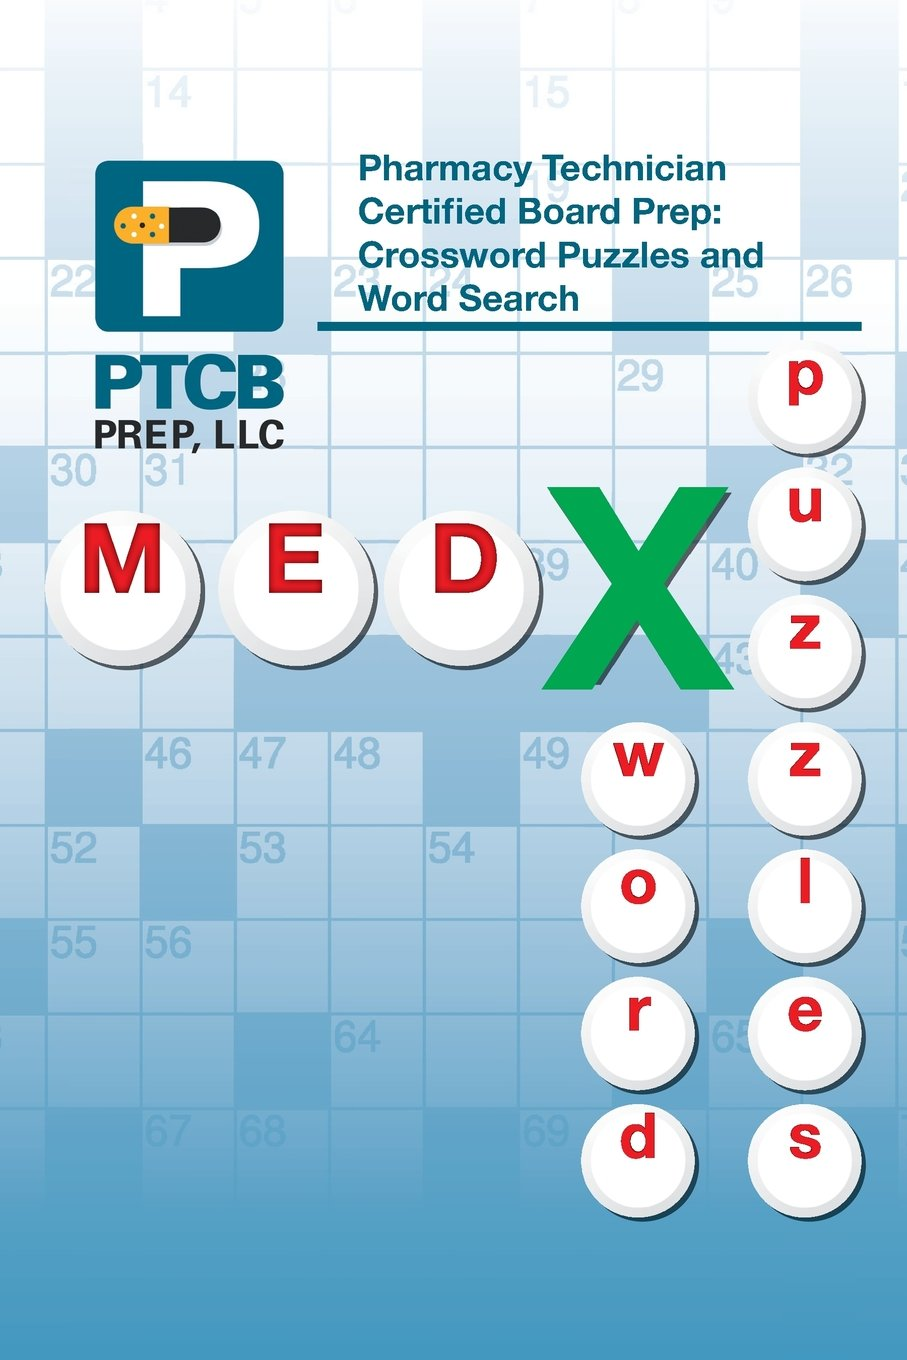 Pharmacy technician certified board prep crossword puzzles and pharmacy technician certified board prep crossword puzzles and word search anne lauren nguyen 9781493101566 amazon books xflitez Choice Image